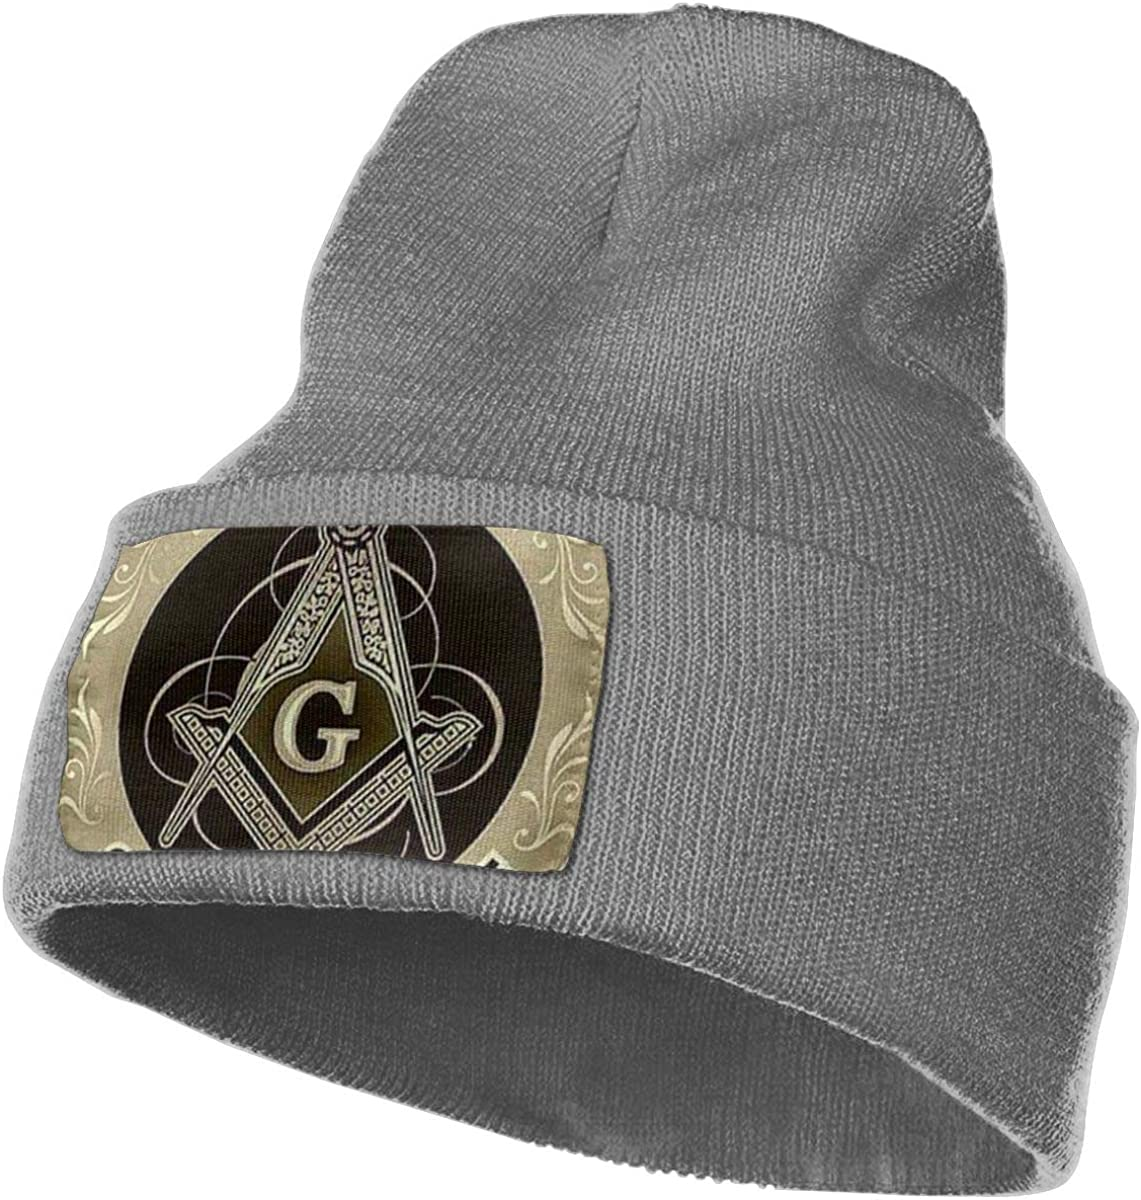 JimHappy Freemason So Mote It Be Hat for Men and Women Winter Warm Hats Knit Slouchy Thick Skull Cap